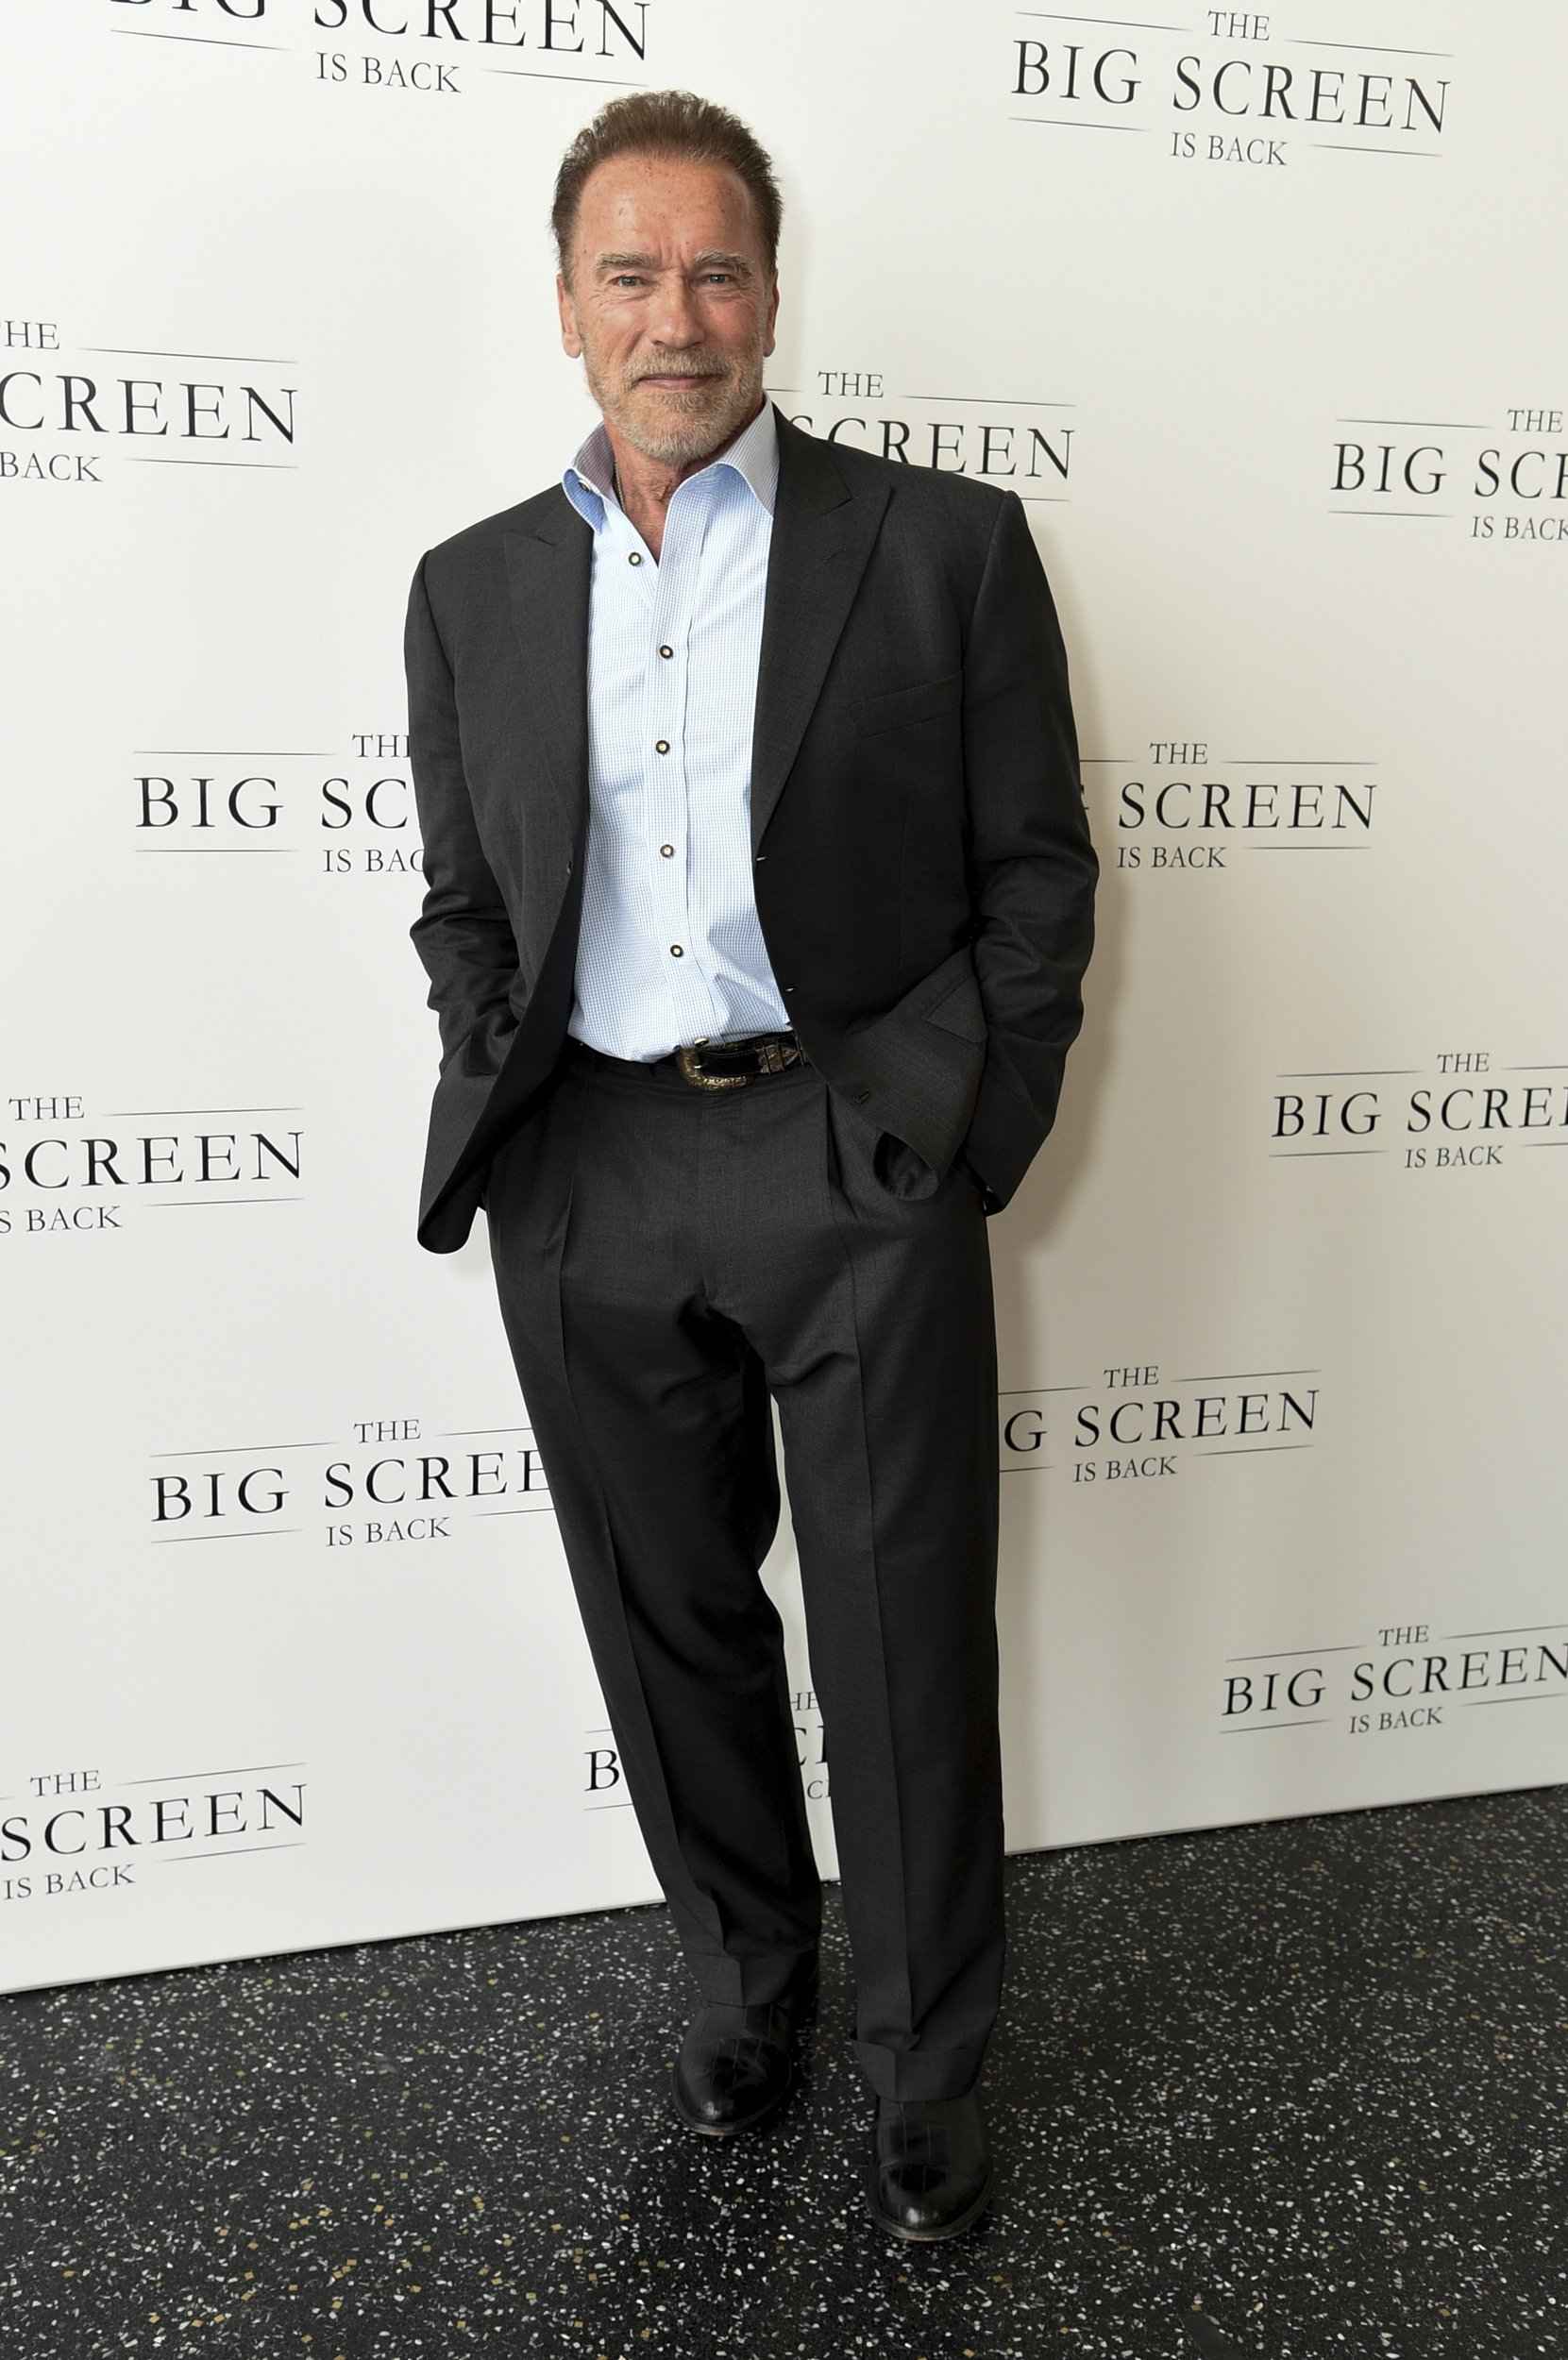 Actor Arnold Schwarzeneggerarrives at 'The Big Screen is Back' media event that included 10 studios convening to showcase a sampling of their summer movie releases in Los Angeles, California, U.S., May 19, 2021. (AP Photo)